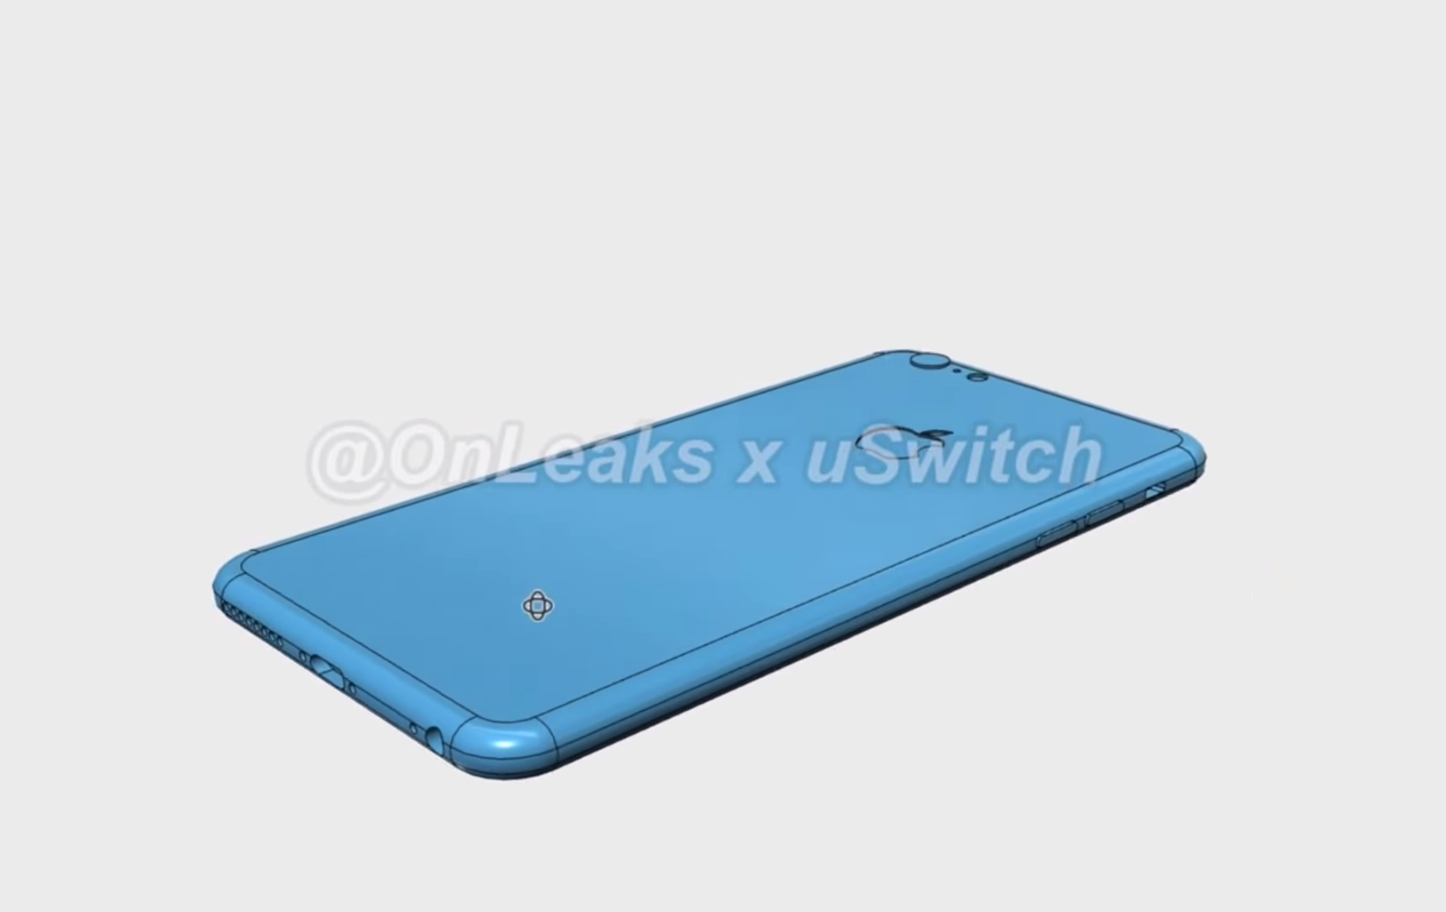 Iphone6s cad image